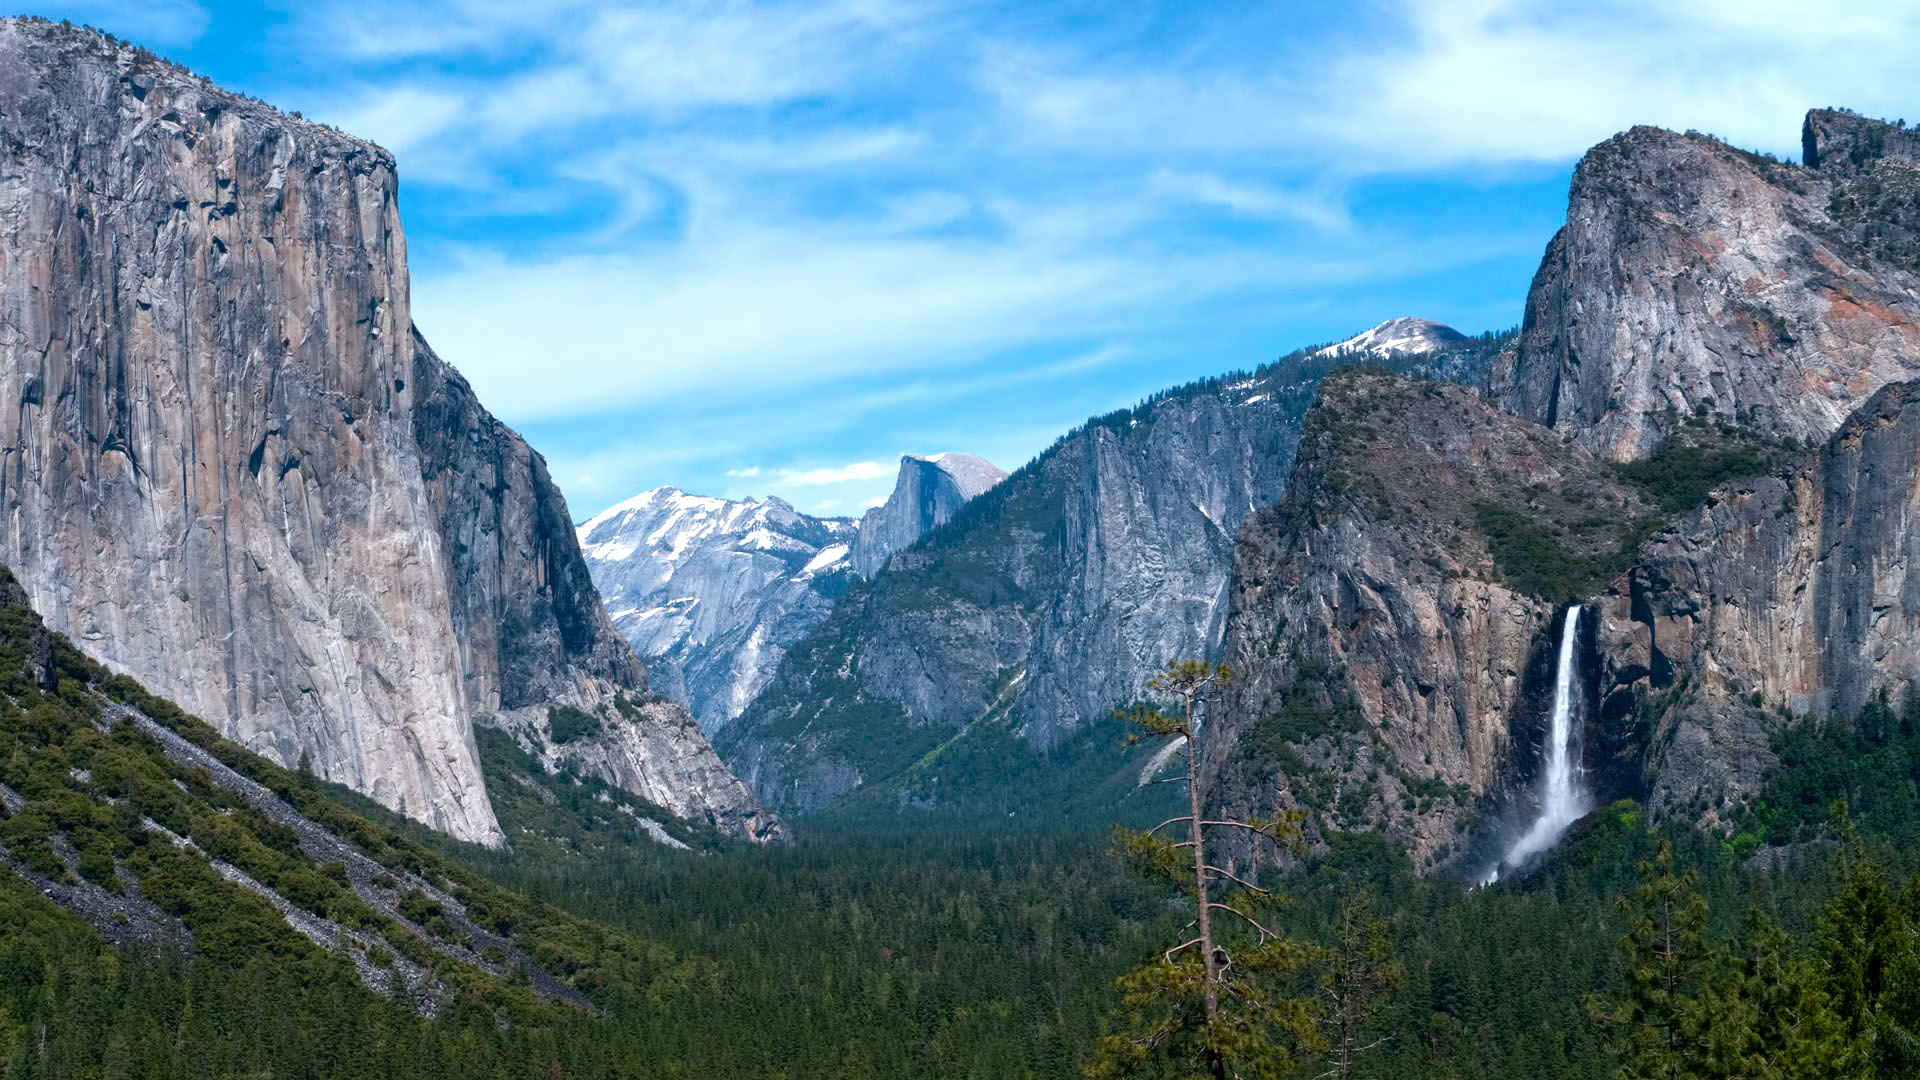 31 312363 top full hd wallpaper 2016 february 1 yosemite